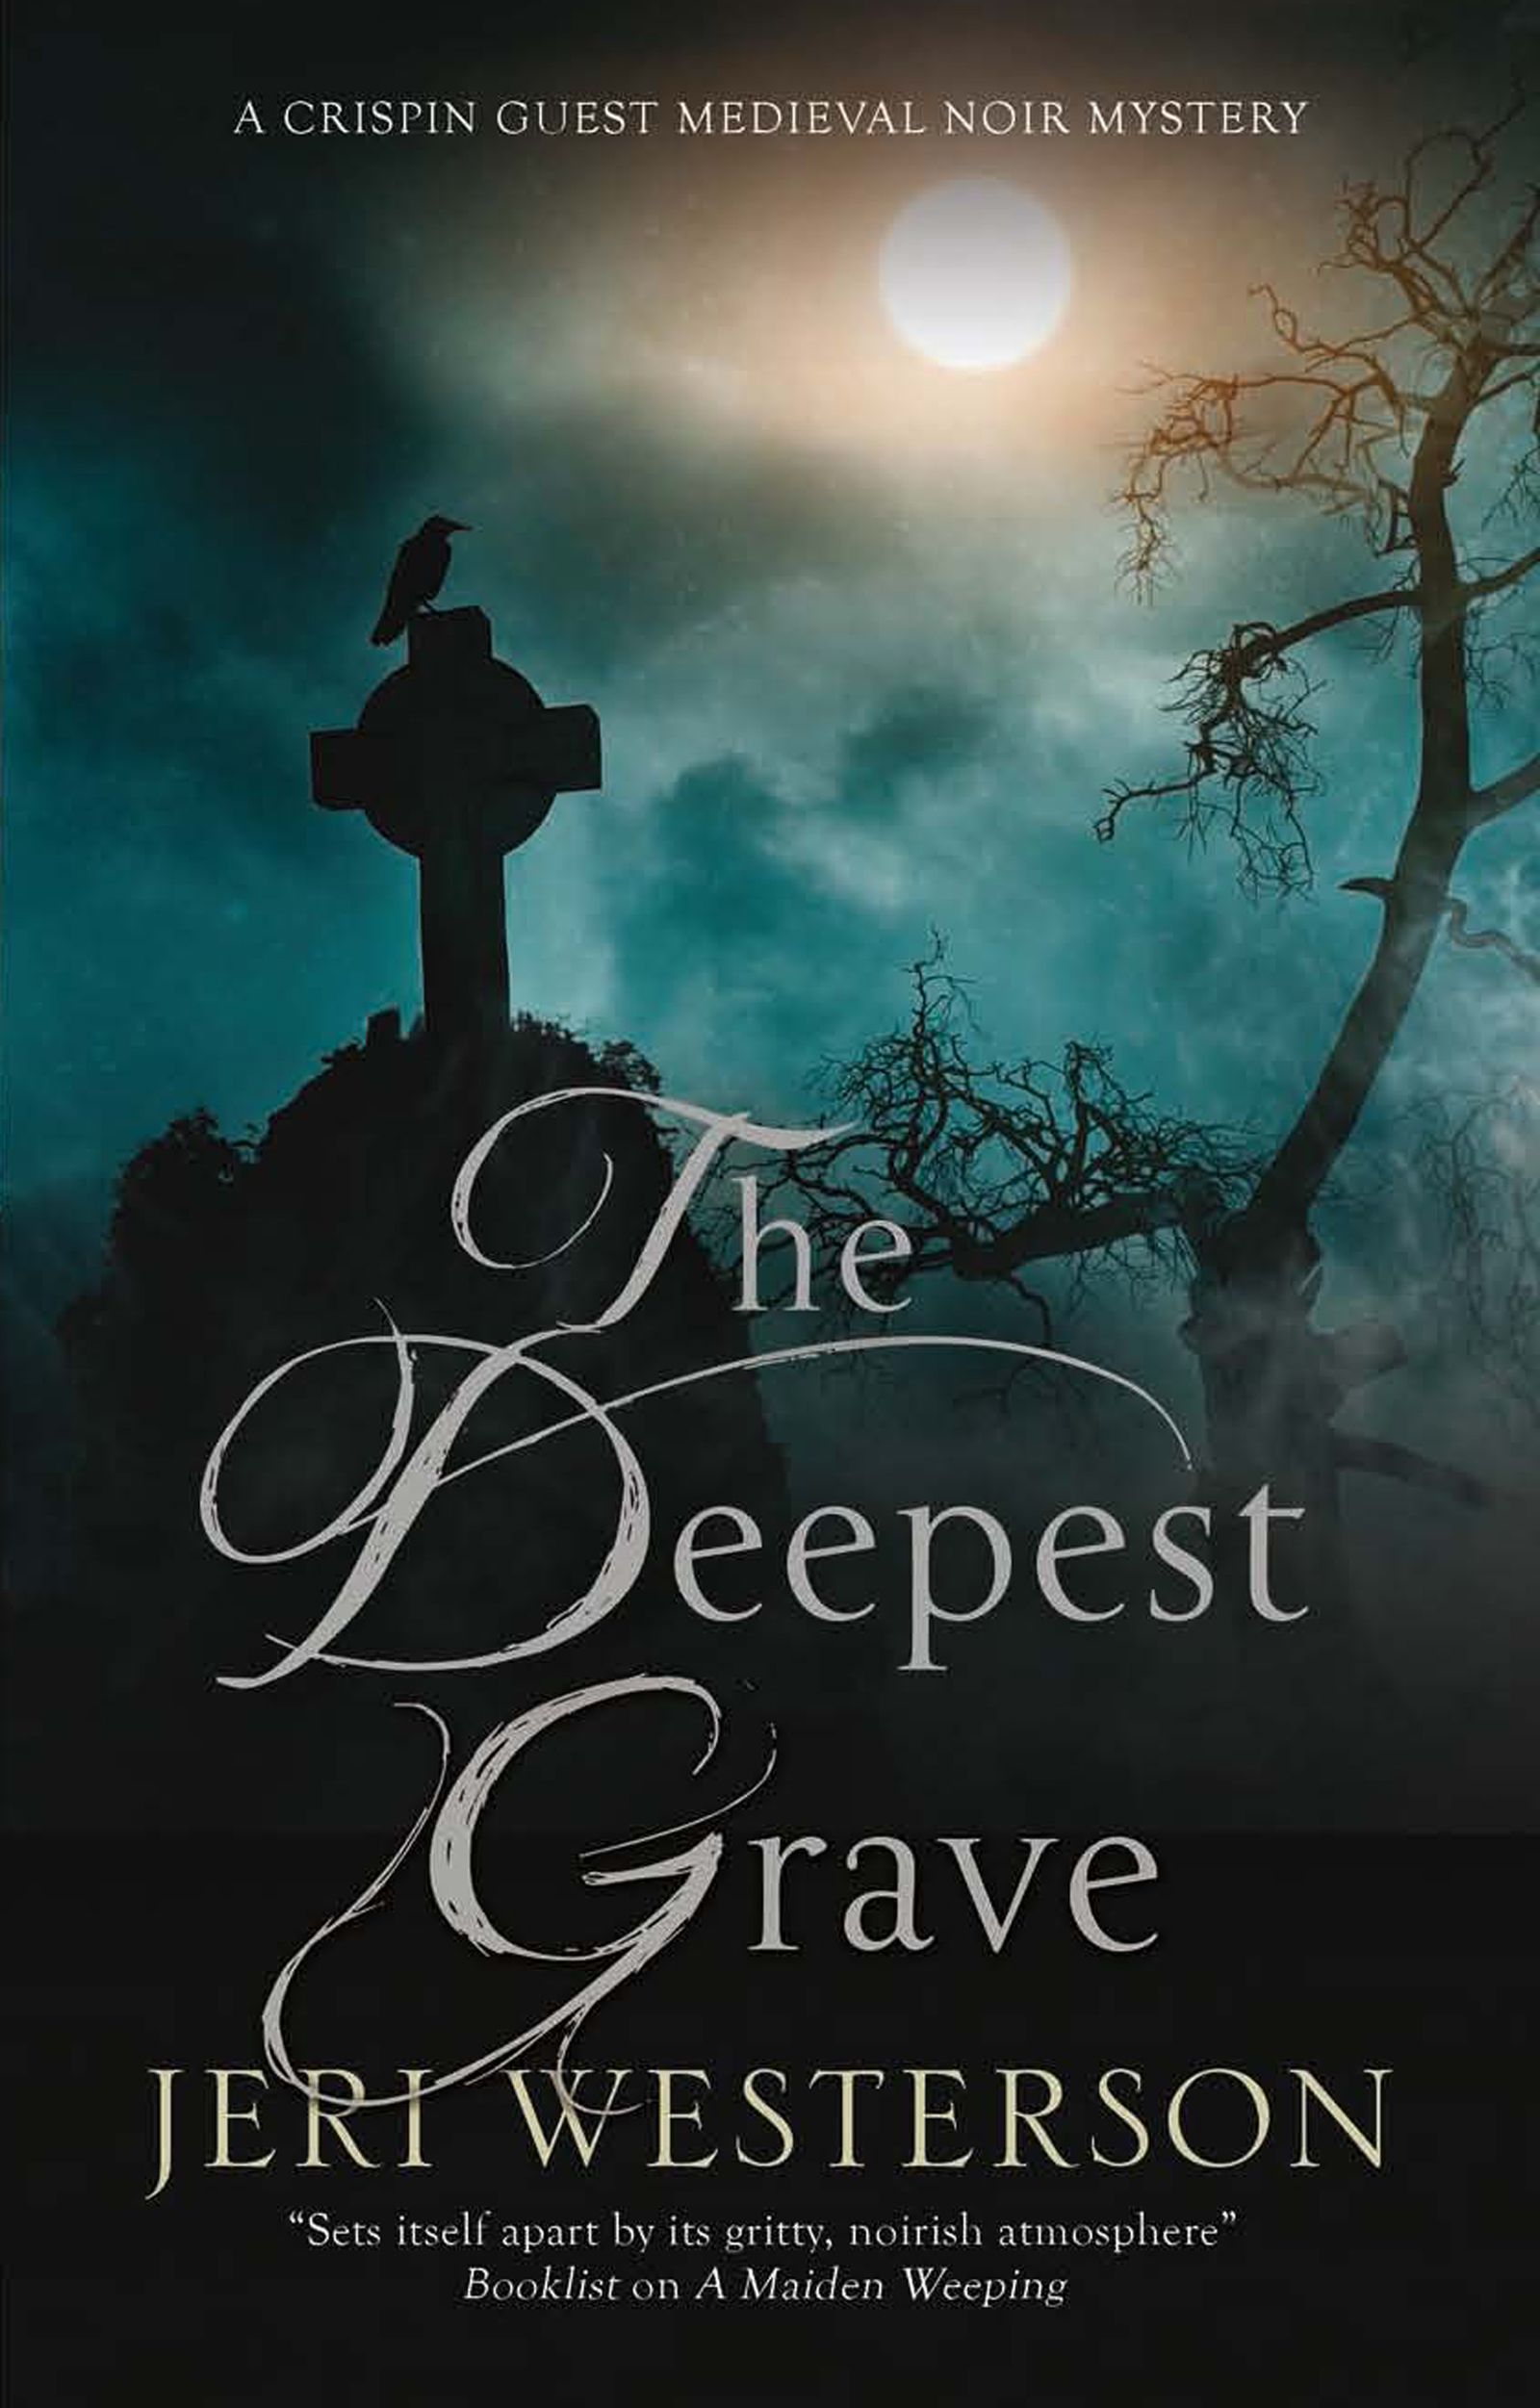 The deepest grave - bibliophile review